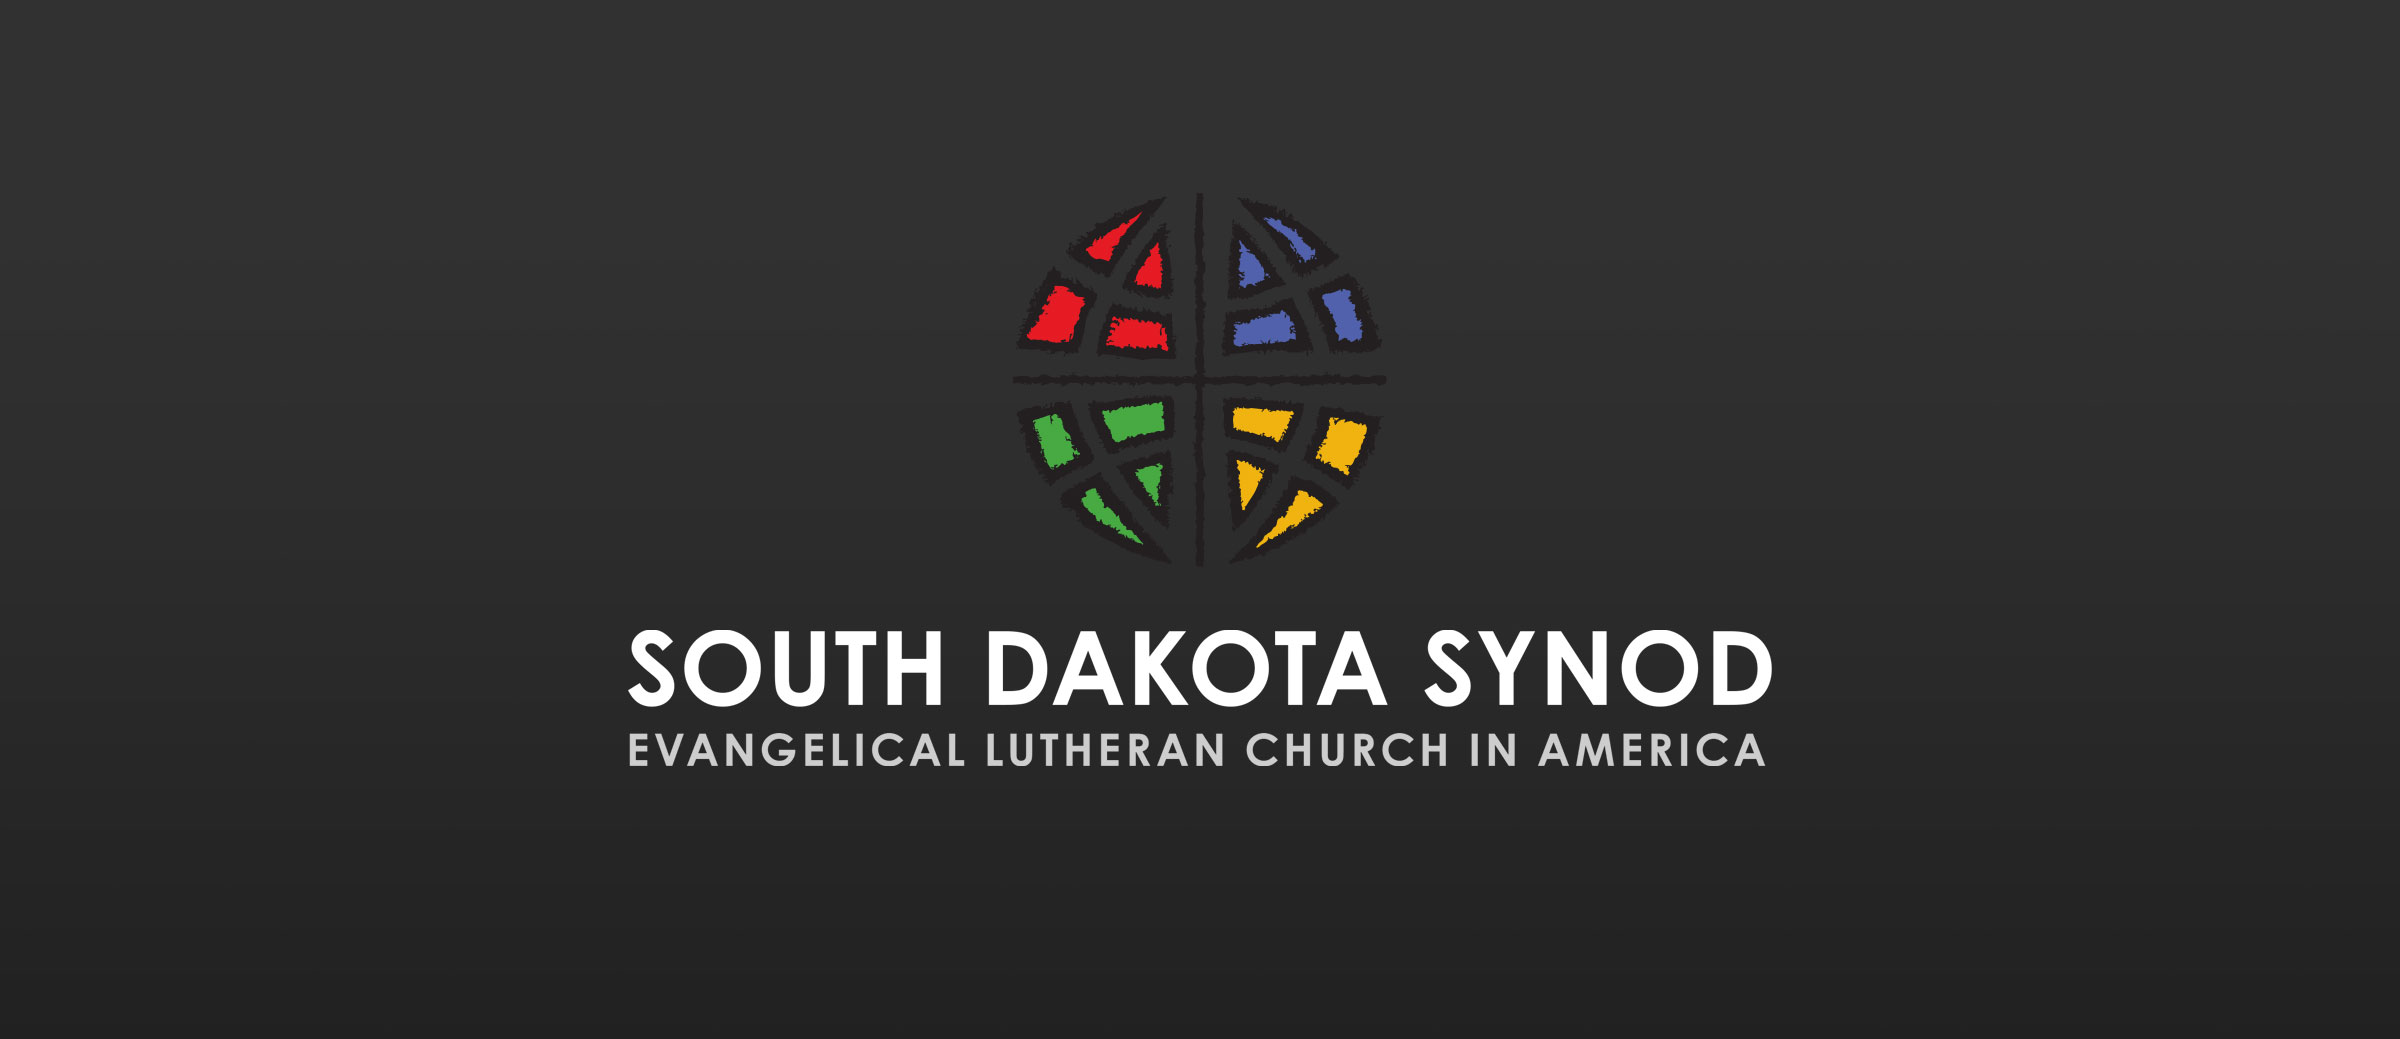 sd-synod-banner